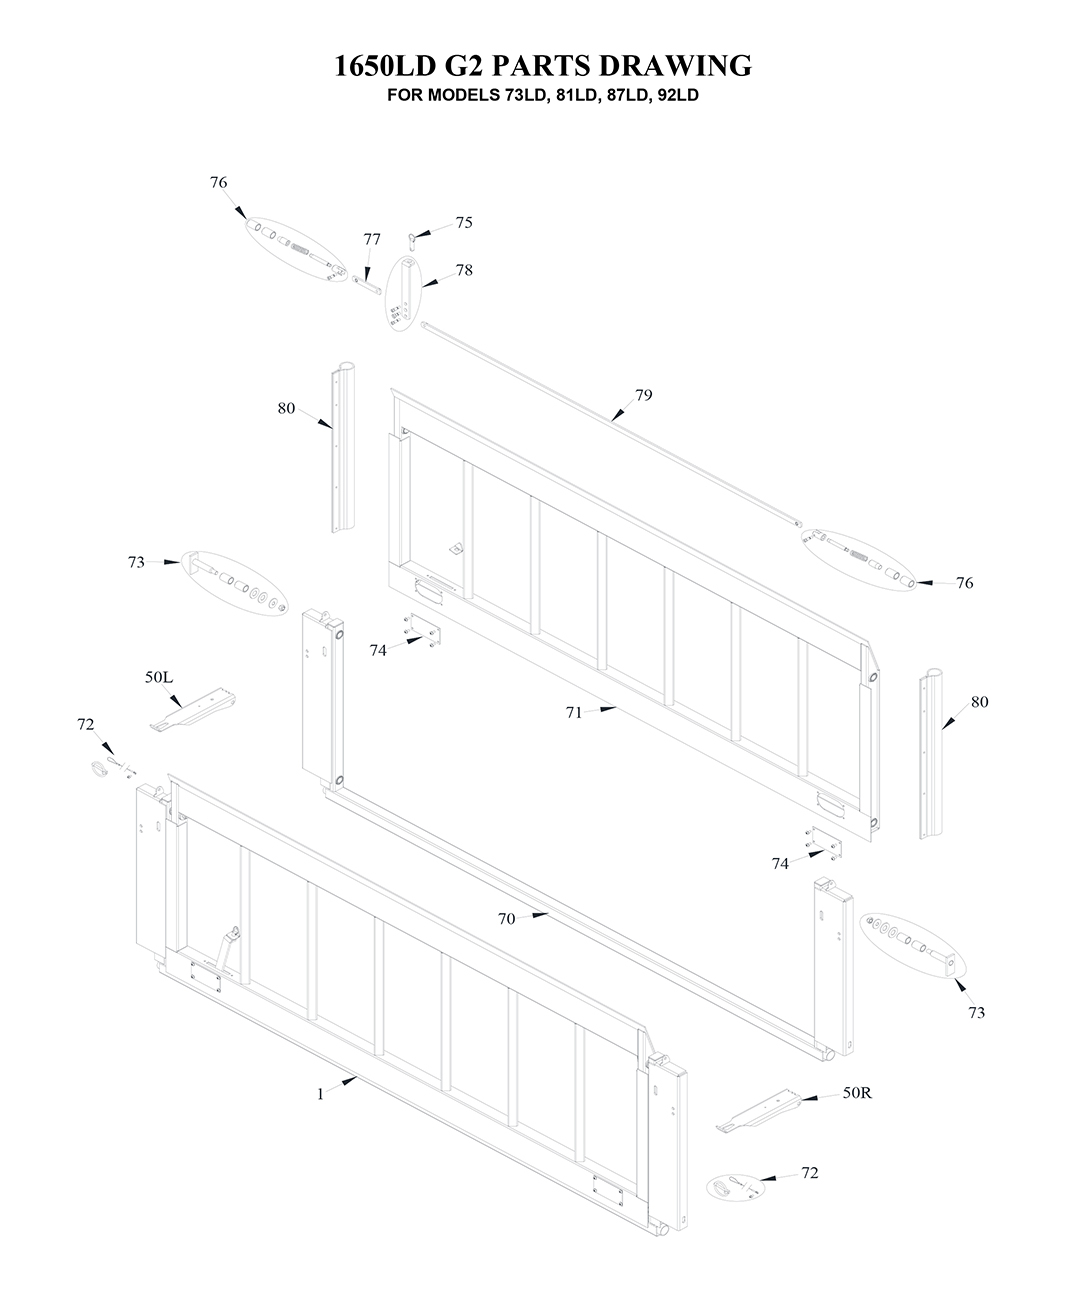 Tommy Gate G2 Series Lift-And-Dump Diagram [Flatbed, Stake, Van